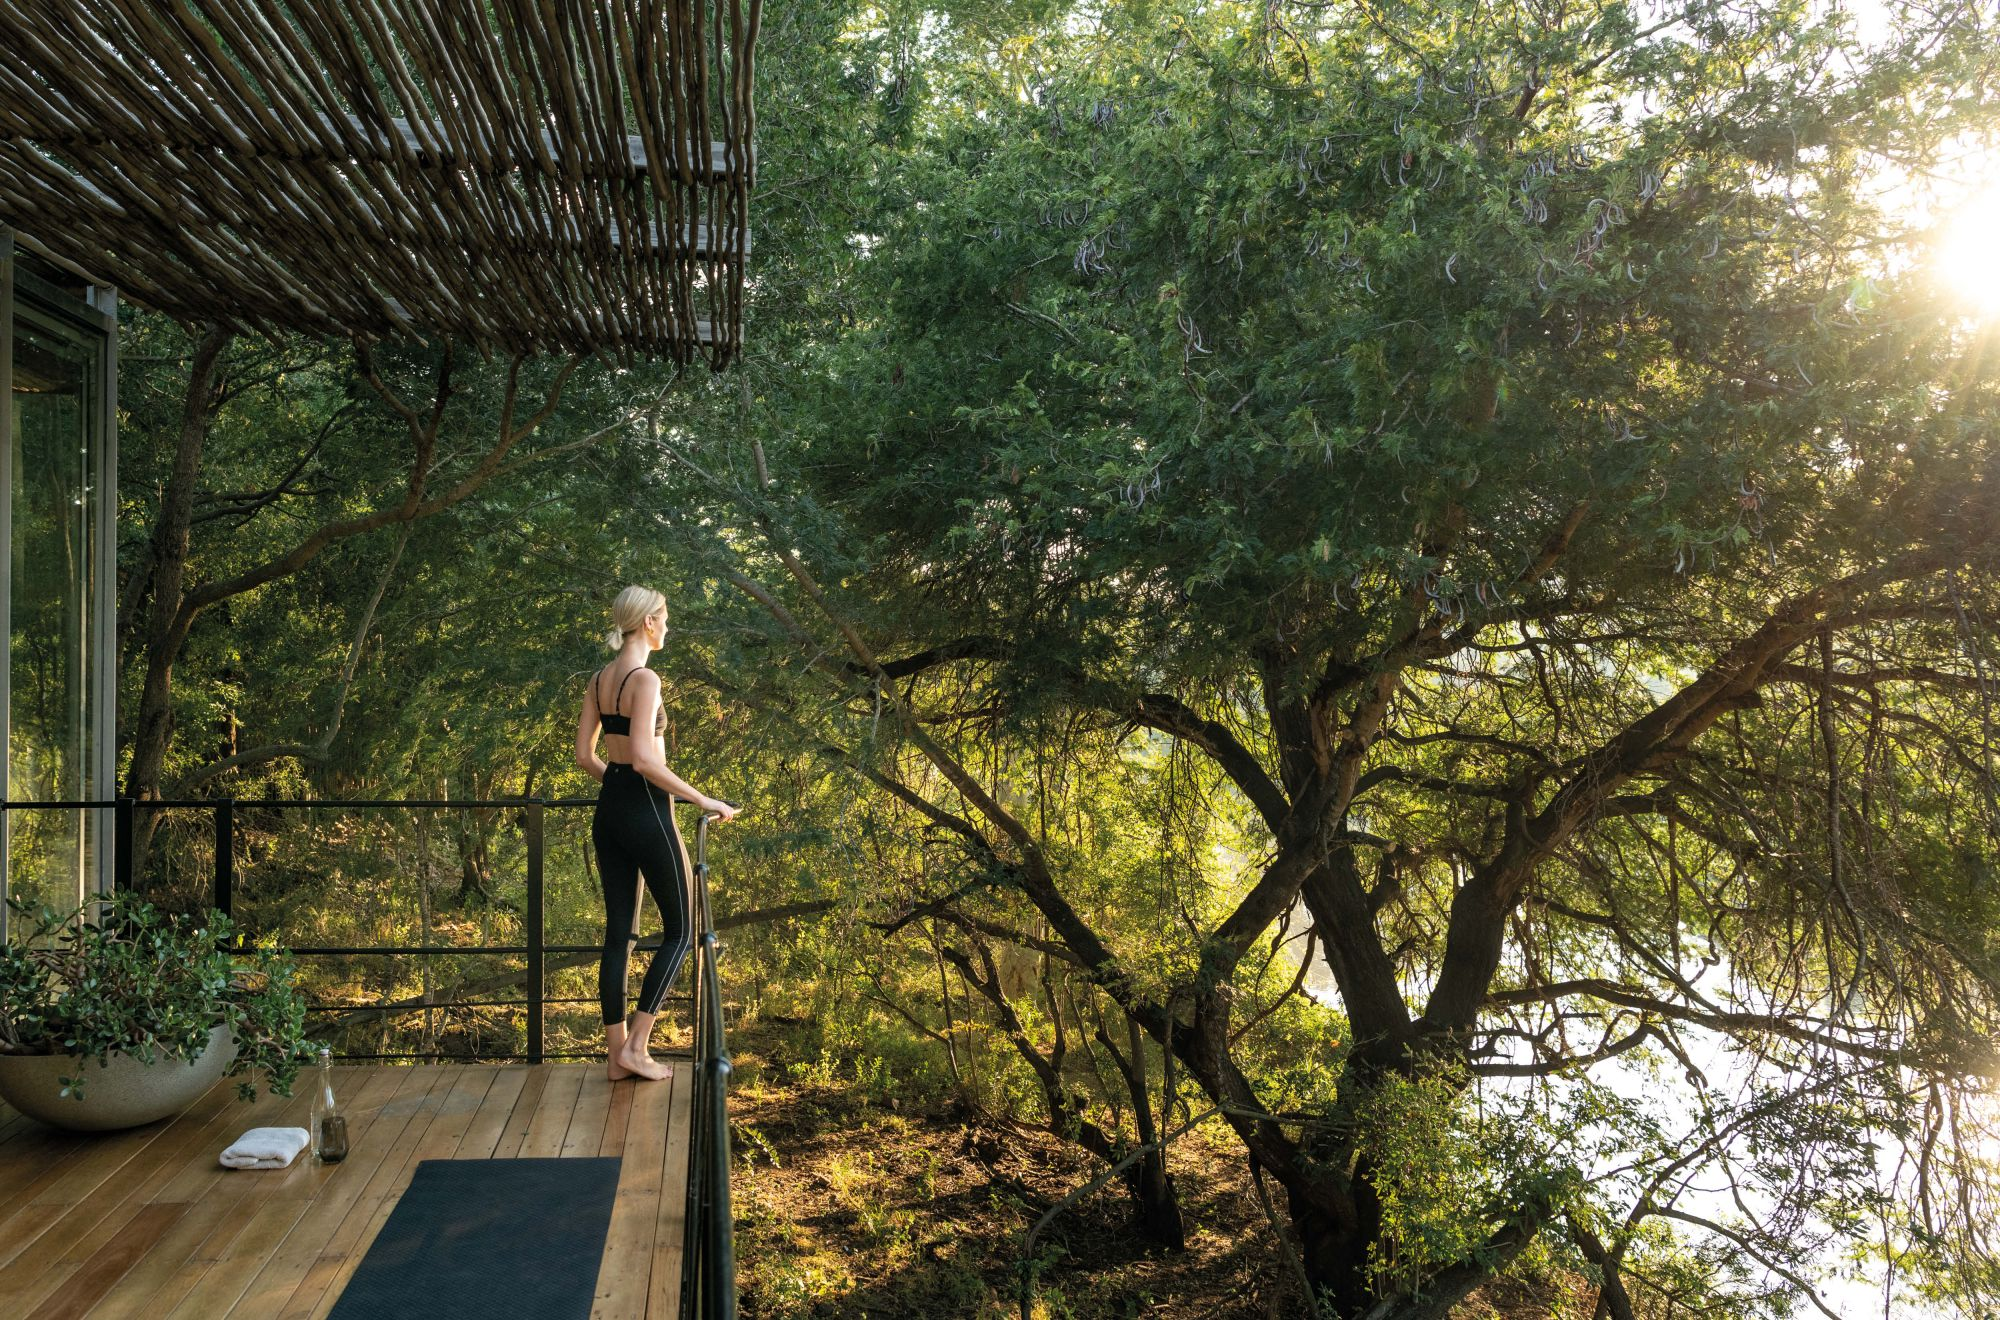 Singita in South Africa brings its guests back to nature